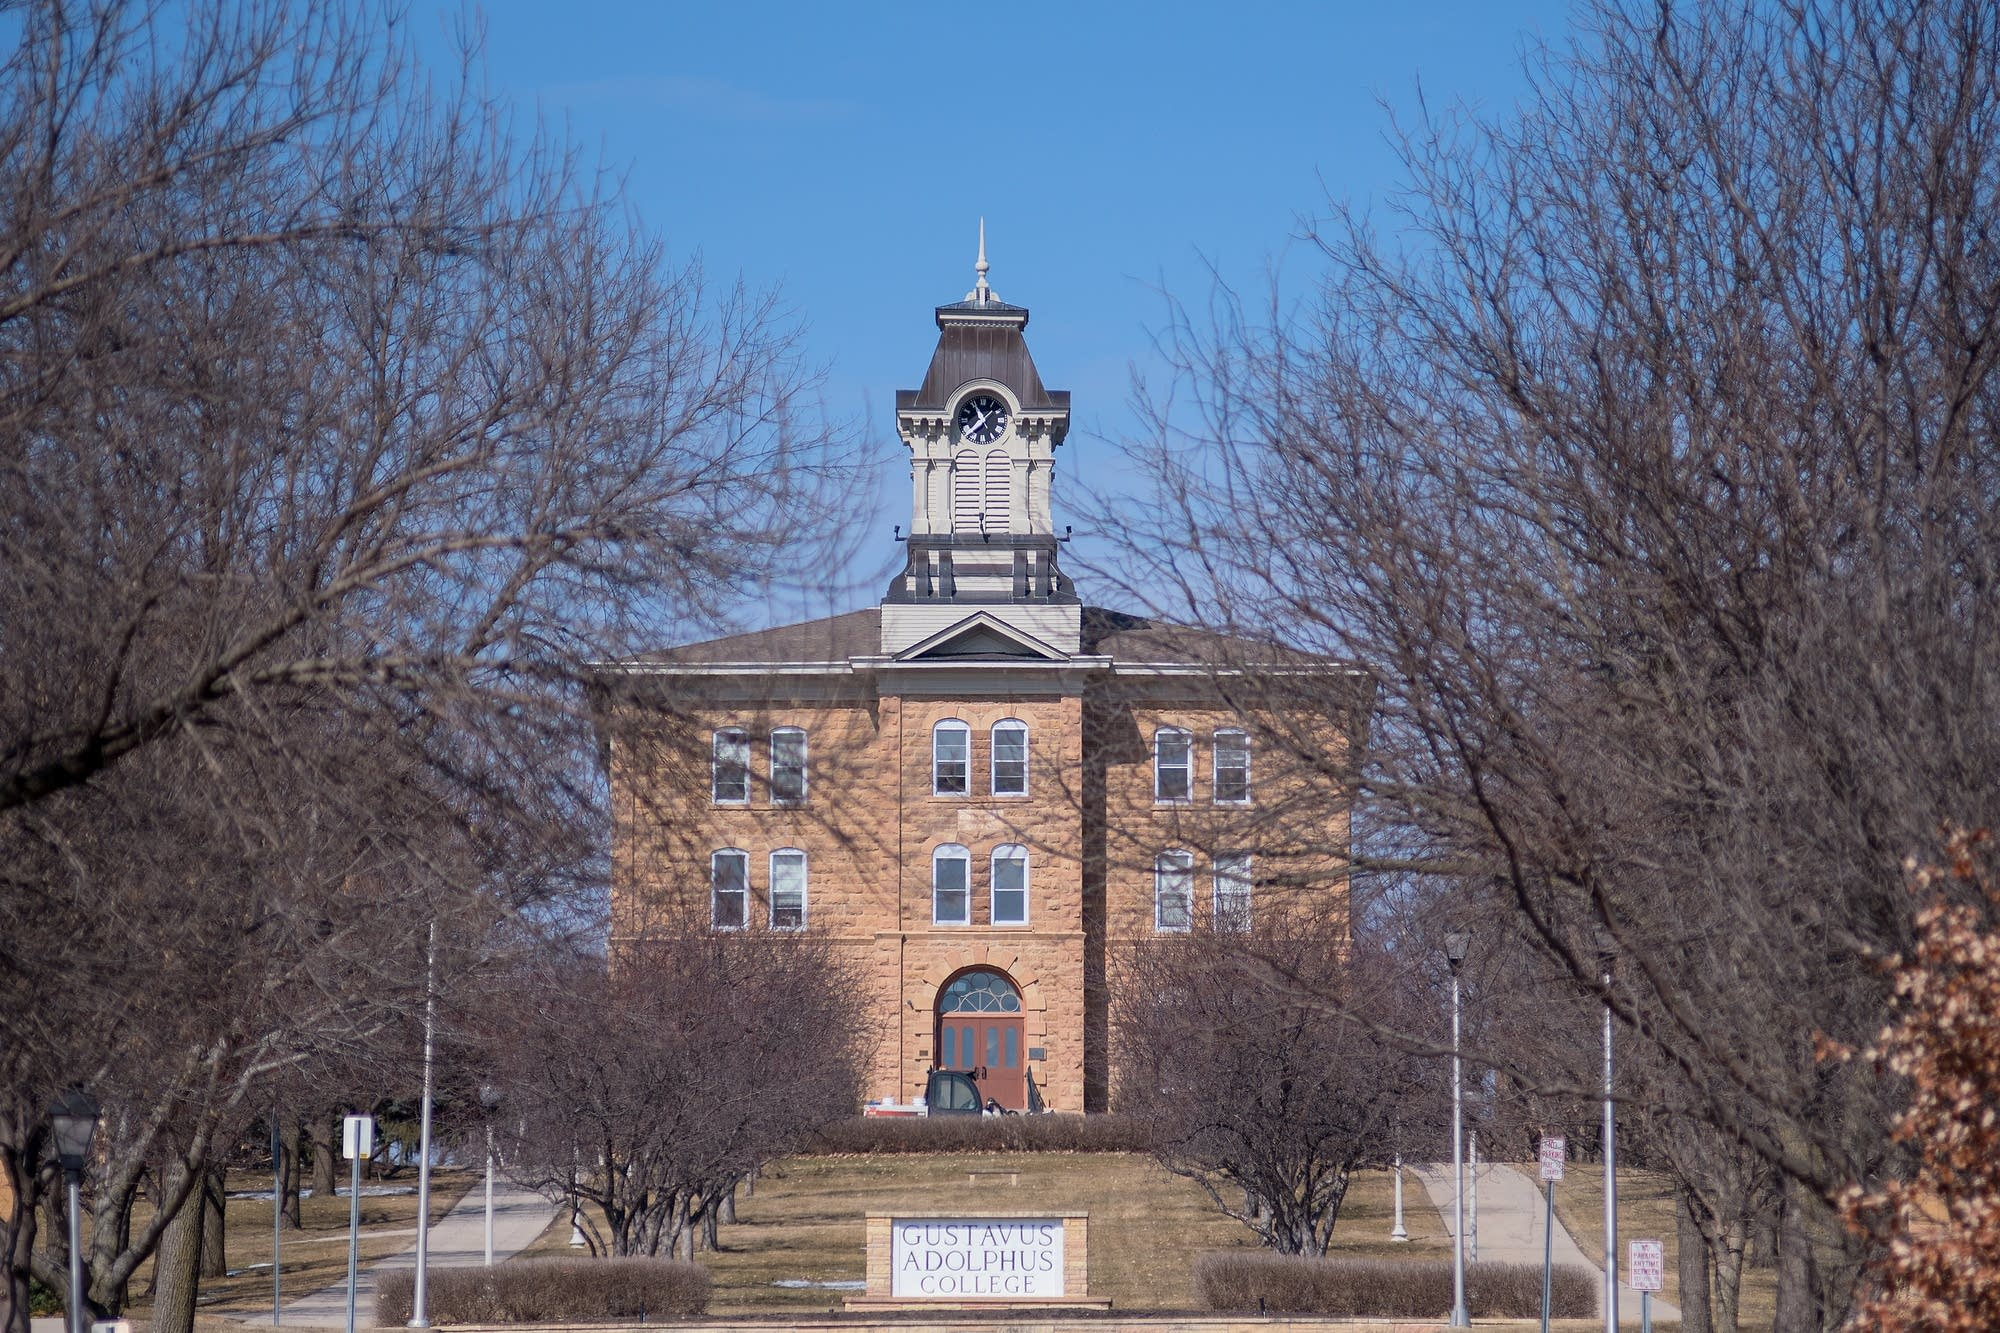 The Old Main building on the Gustavus Adolphus campus was heavily damaged.